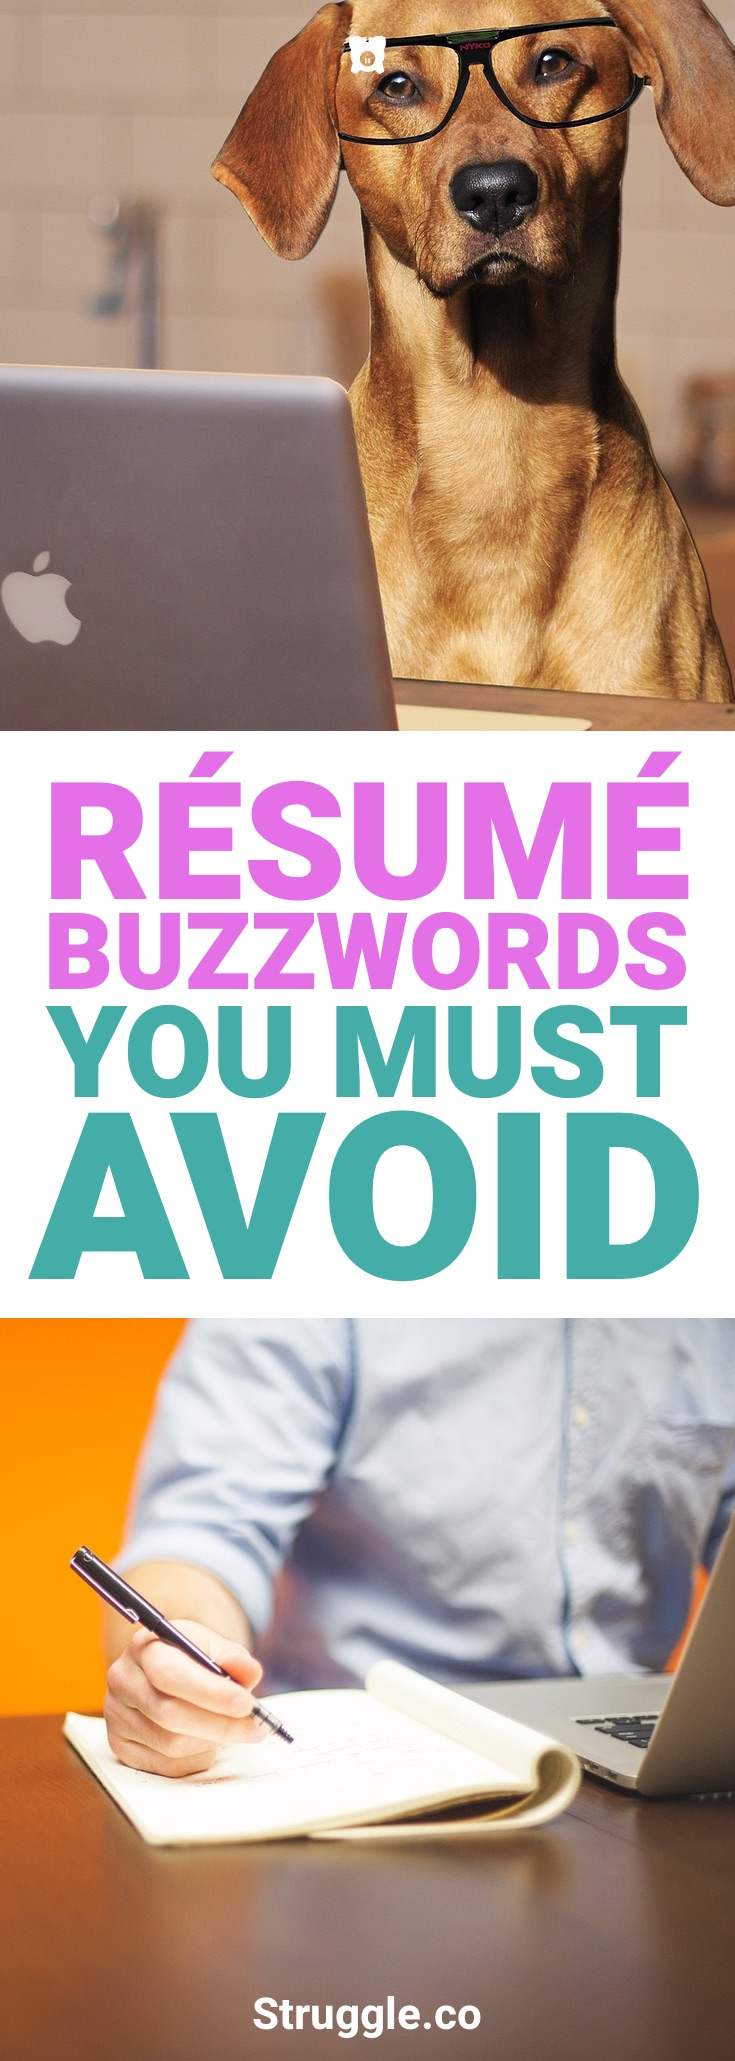 resume-buzzwords-pin2 - Struggle.co | Save, Earn, and Enjoy Your ...